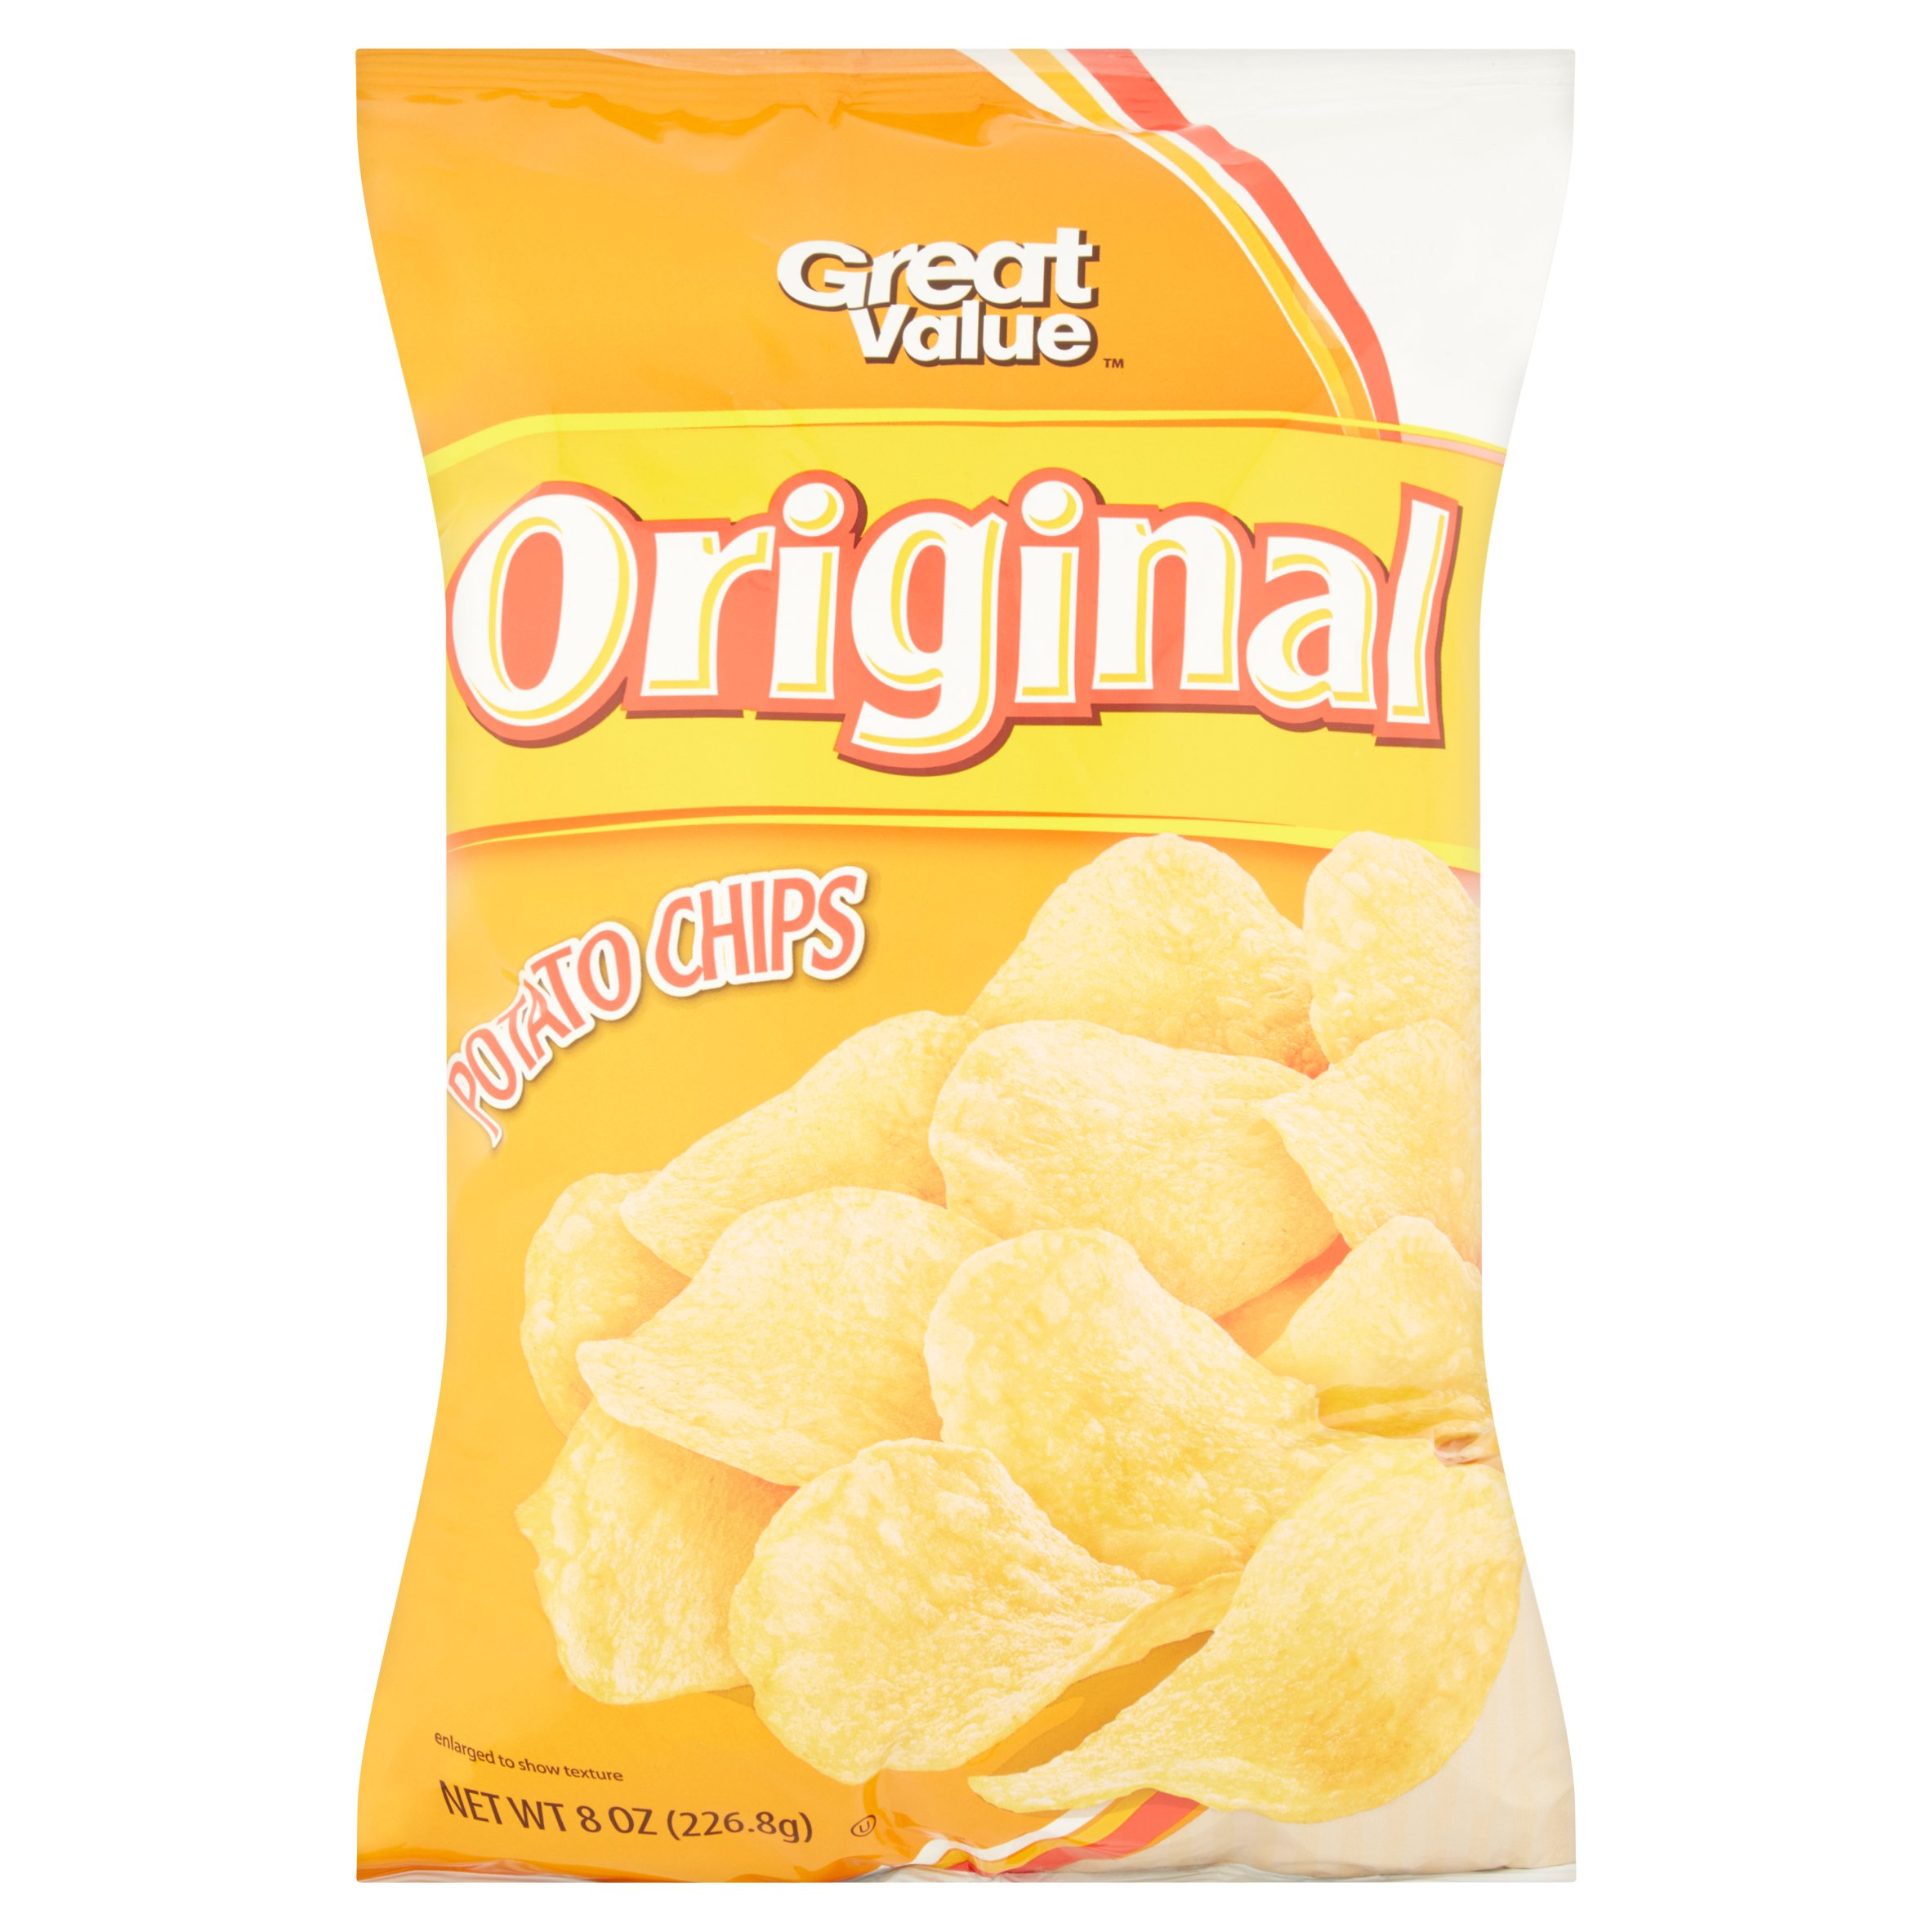 Great Value Original Potato Chips 8 oz by Wal-Mart Stores, Inc.